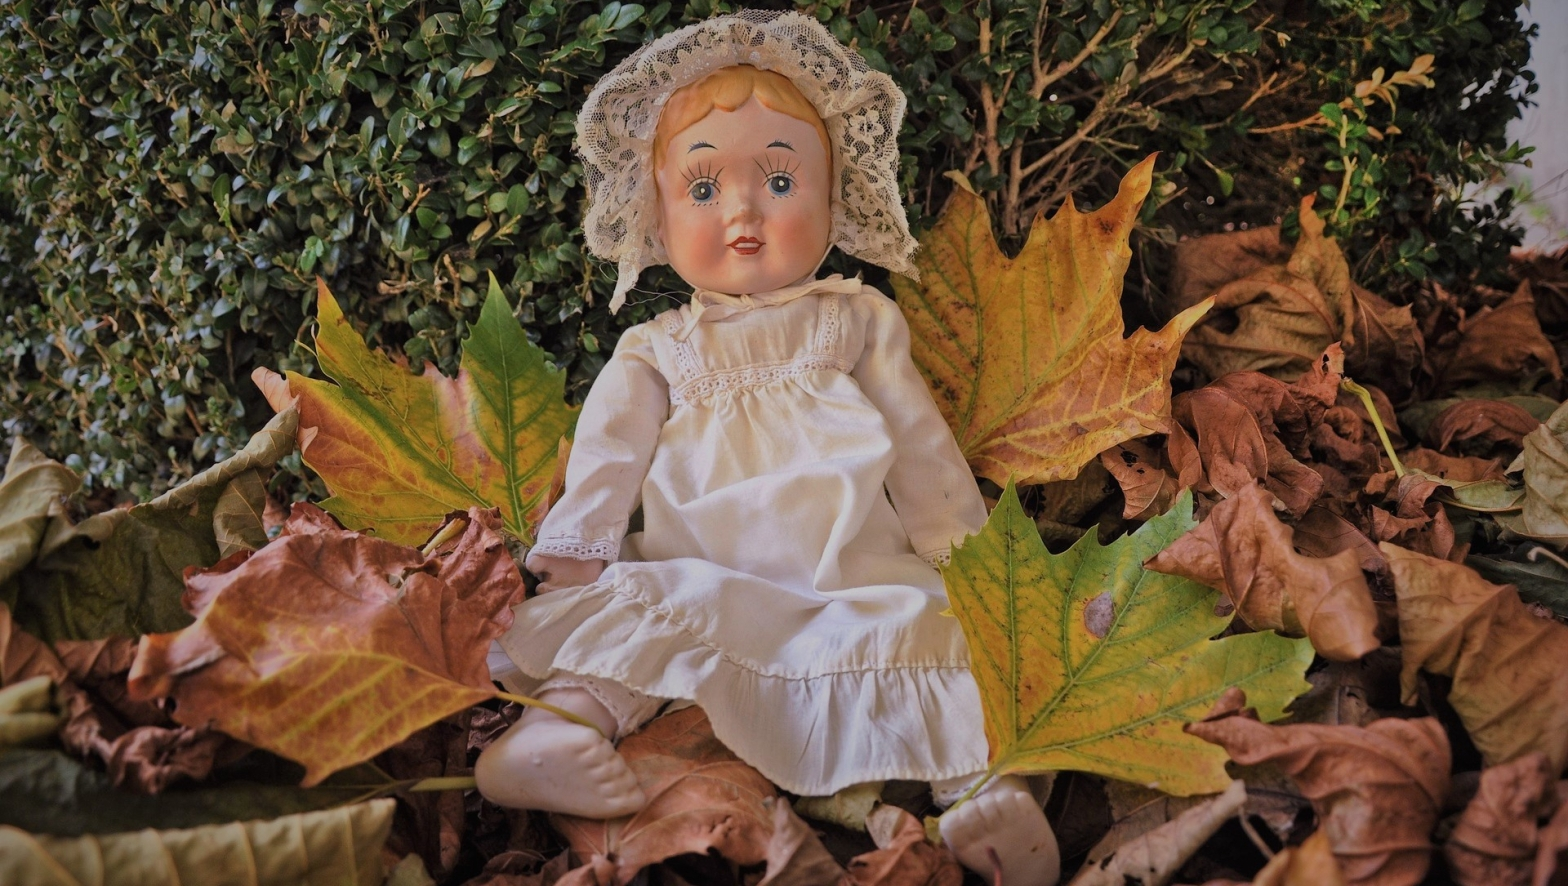 Poem A porcelain doll dressed in a white frock wearing a lacy bonnet sitting on a pile of dried leaves against a green bush